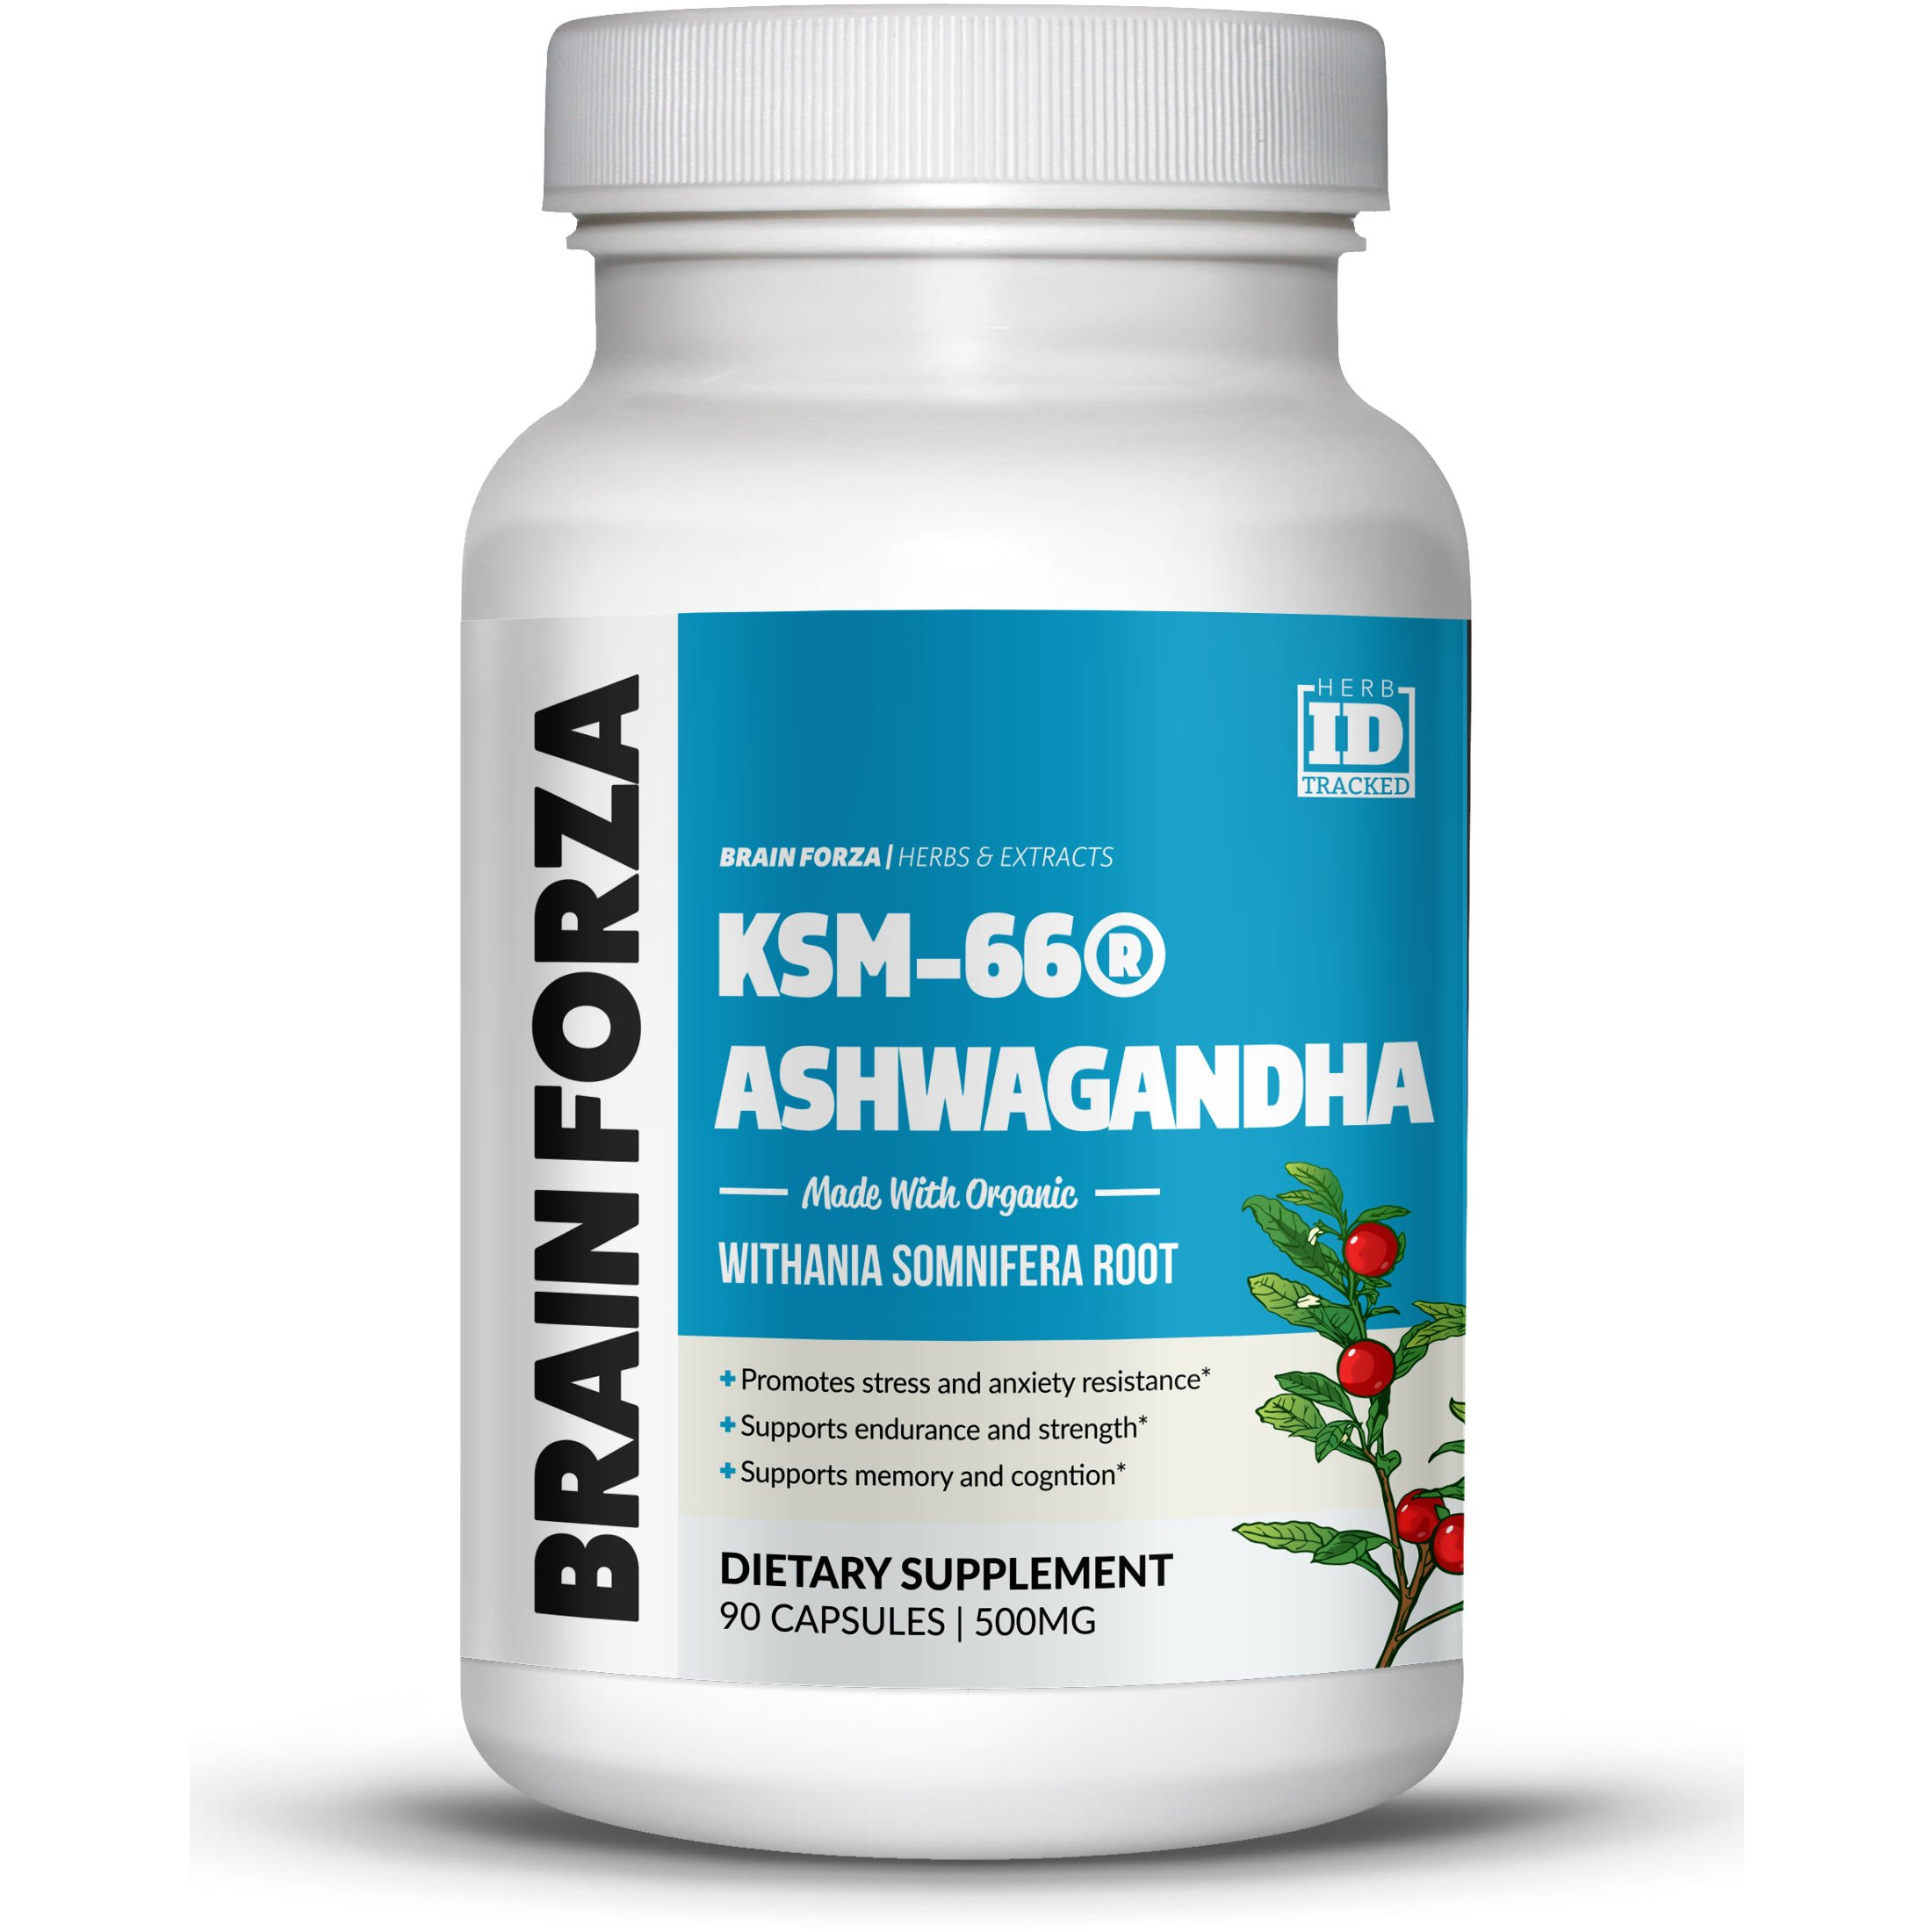 Brain Forza Organic KSM-66 Ashwagandha Root Extract 1,000mg/day for Brain, Stress, Memory and Sleep Support, Organic, Non-GMO, 90 Capsules by Brain Forza